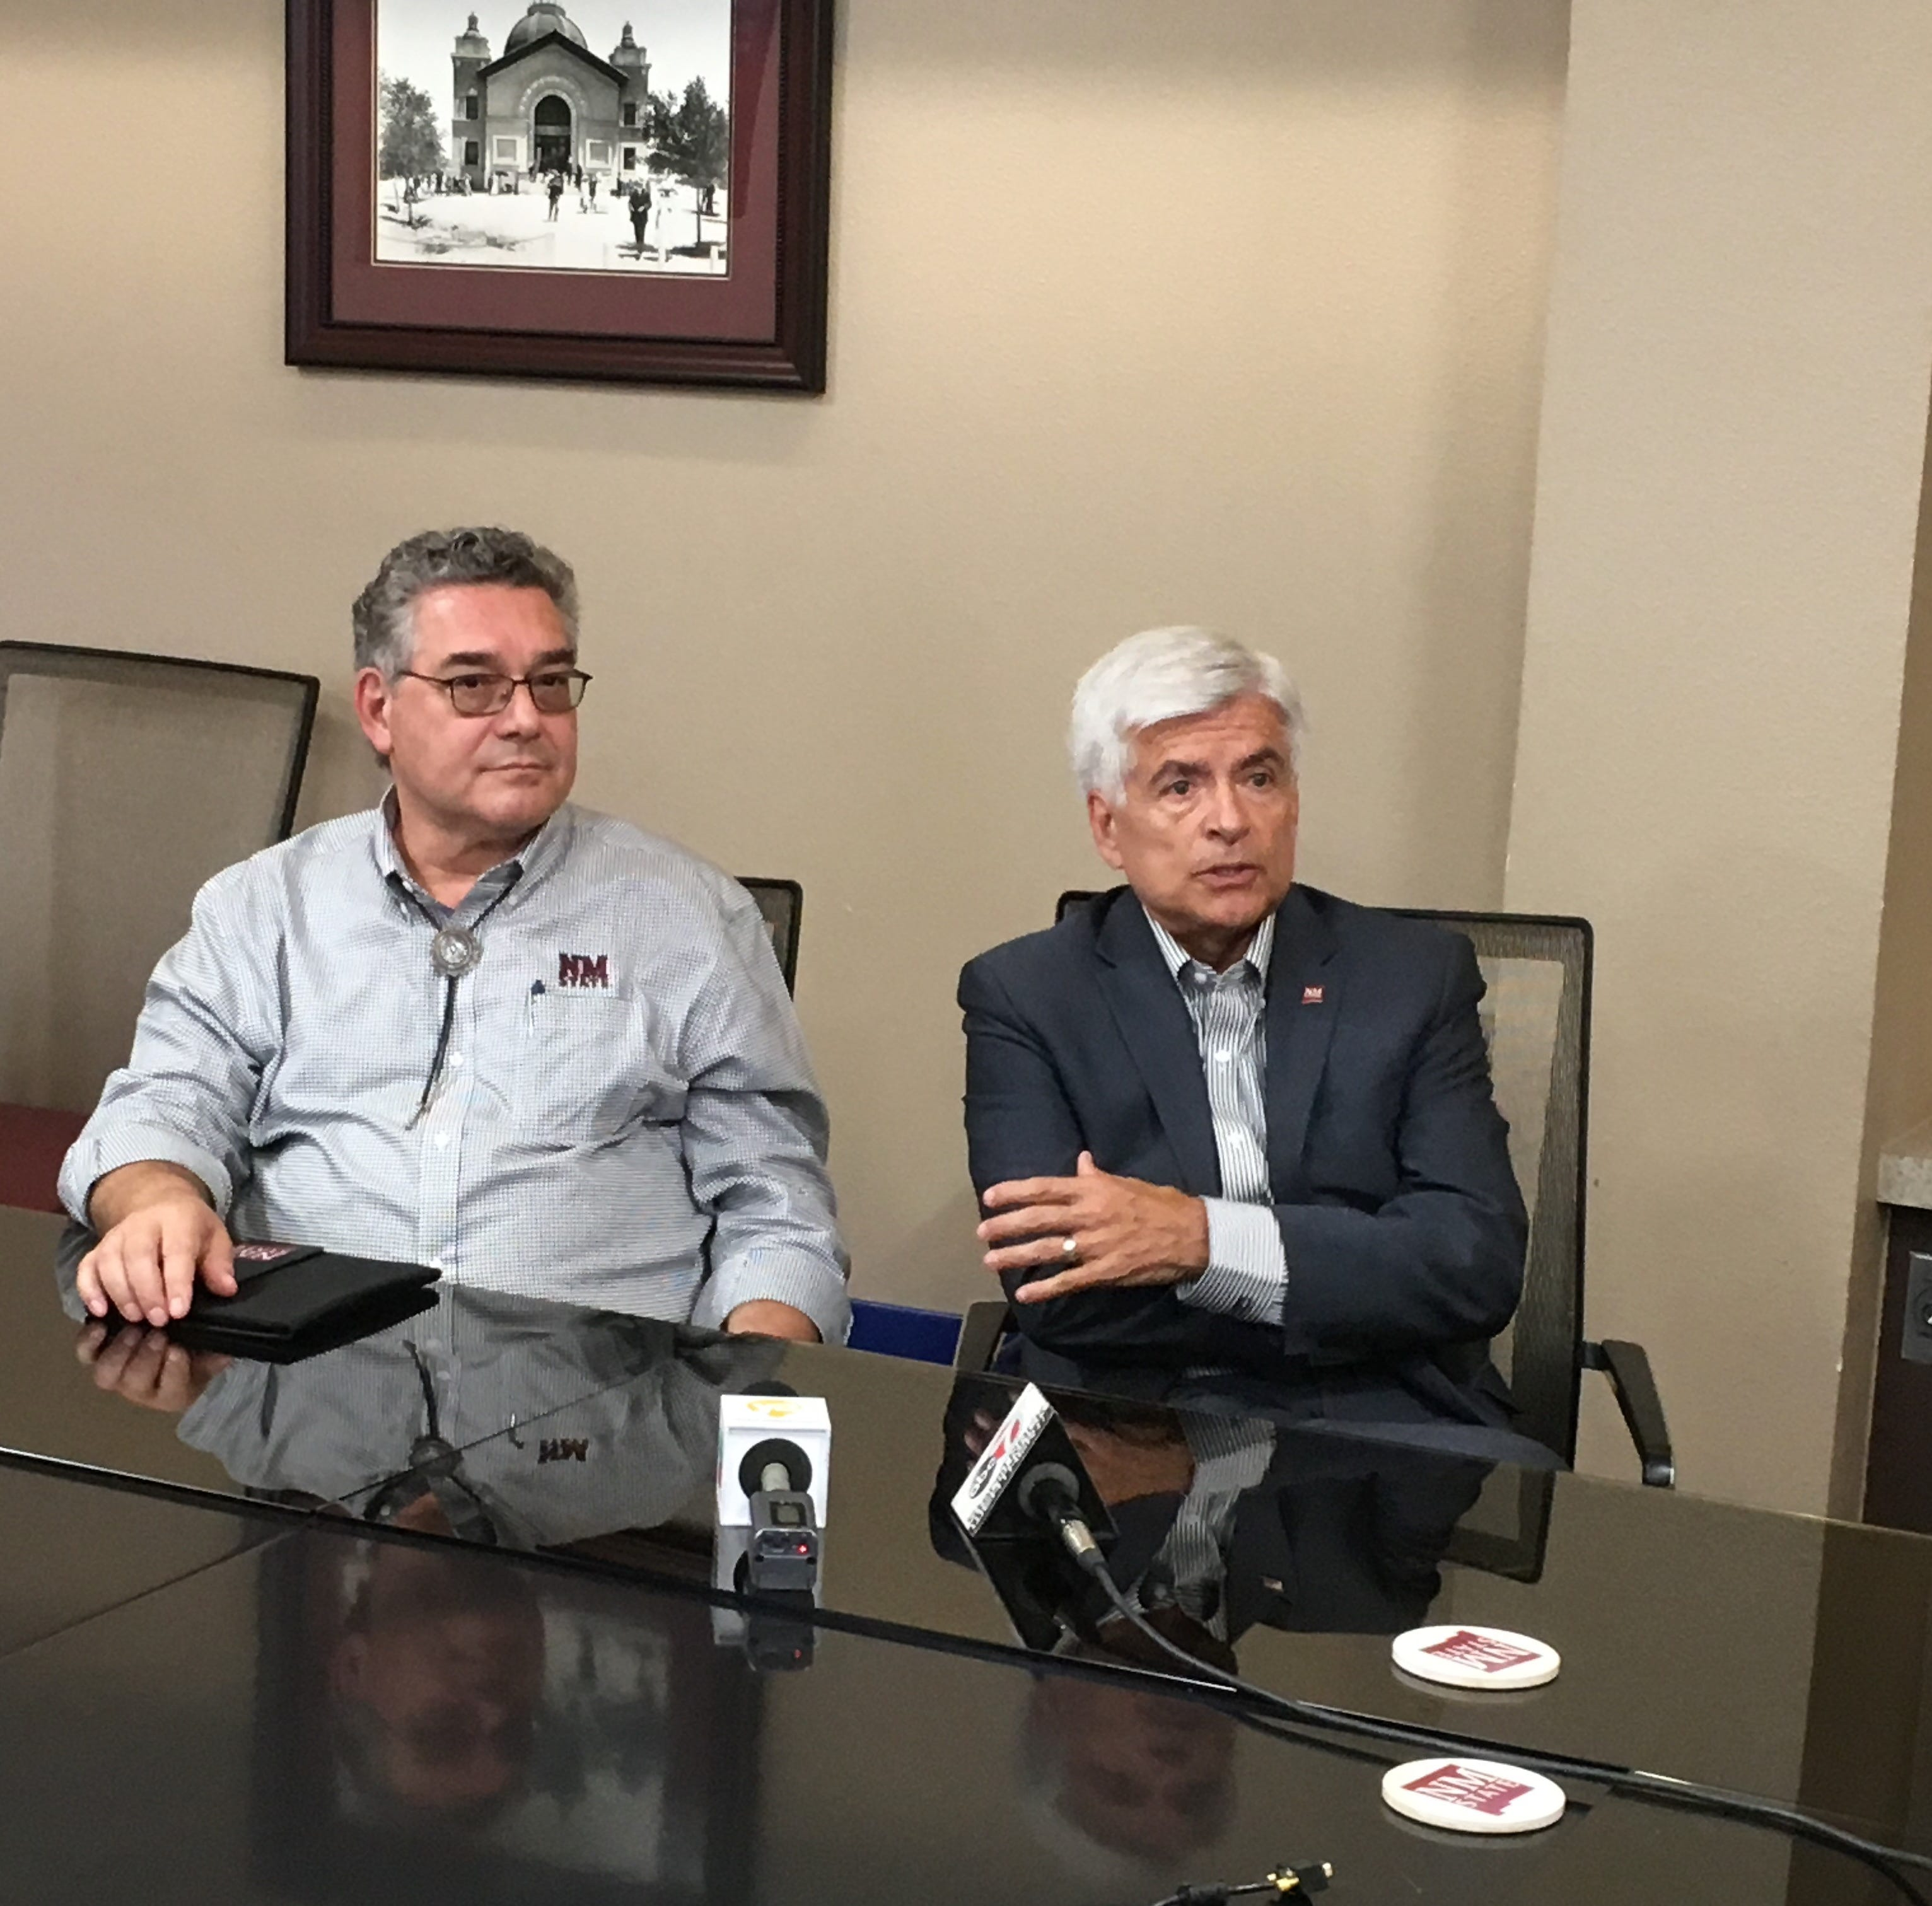 From left, NMSU President John Floros and Chancellor Dan Arvizu speak with reporters at Hadley Hall Wednesday, August 15, 2018.